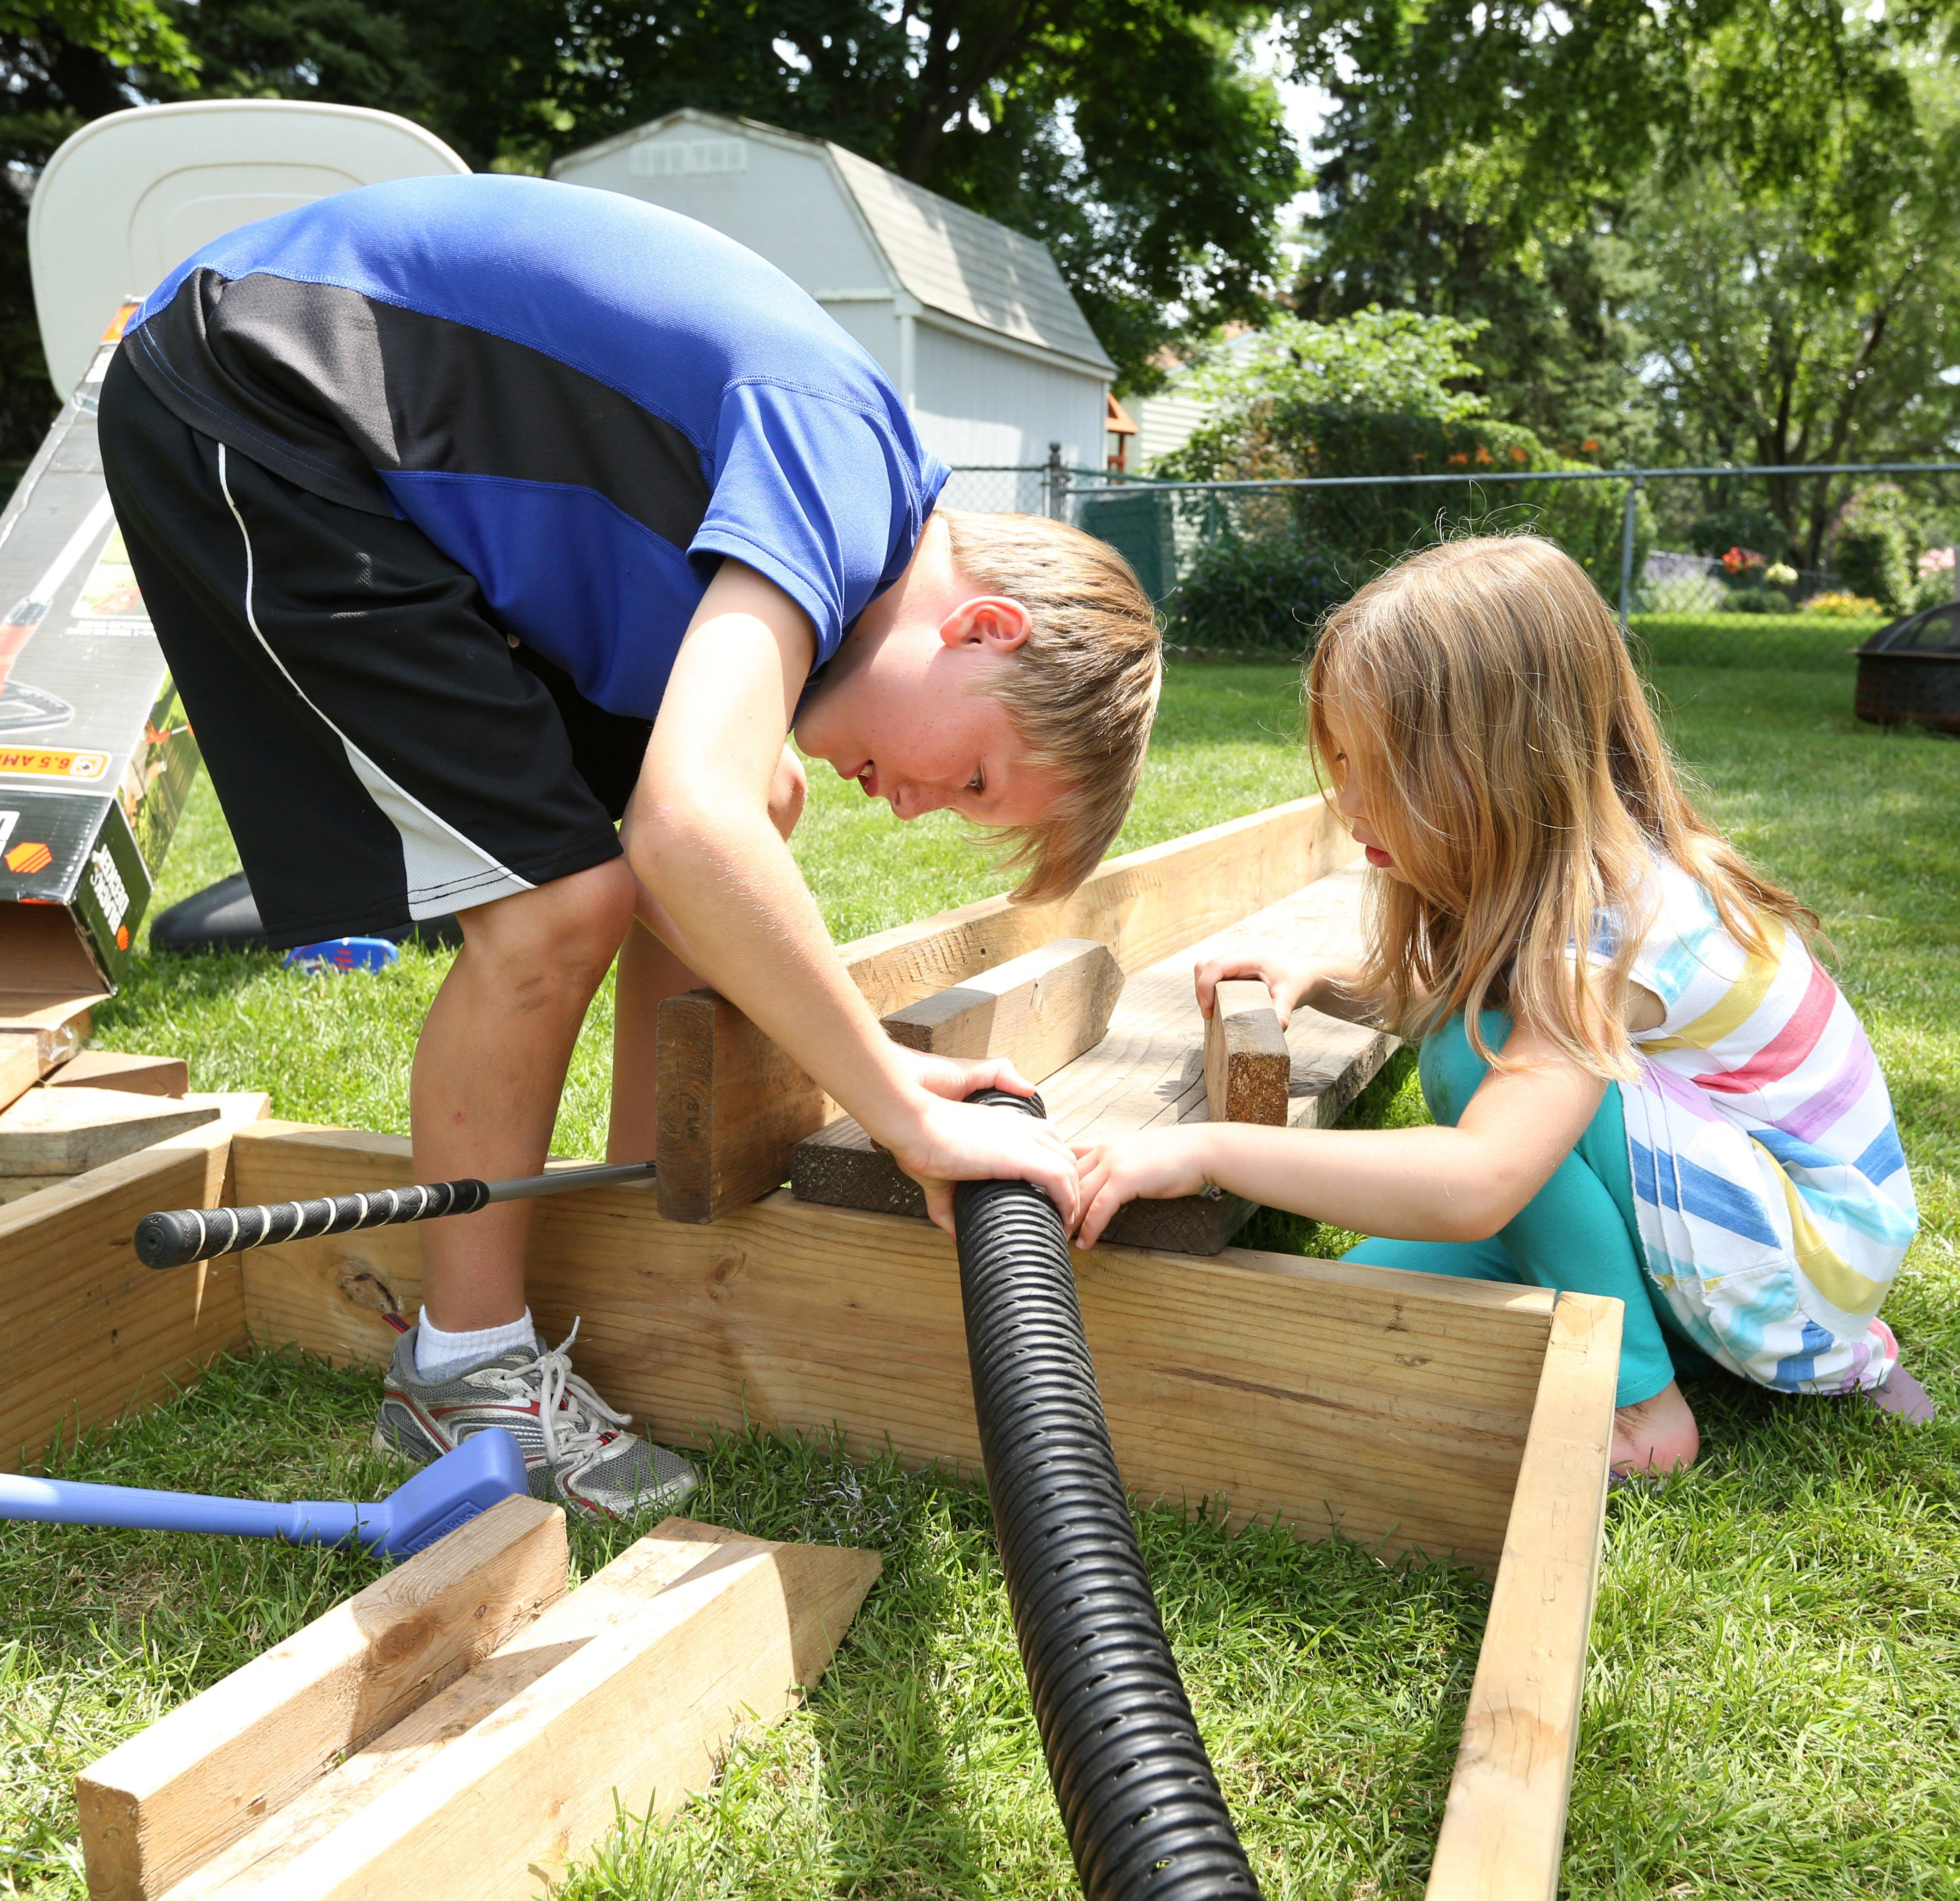 Rylan Williams, 9, left, and friend Lily Anderson, 6, work with tubing and lumber to create one of the holes in their mini-golf course.